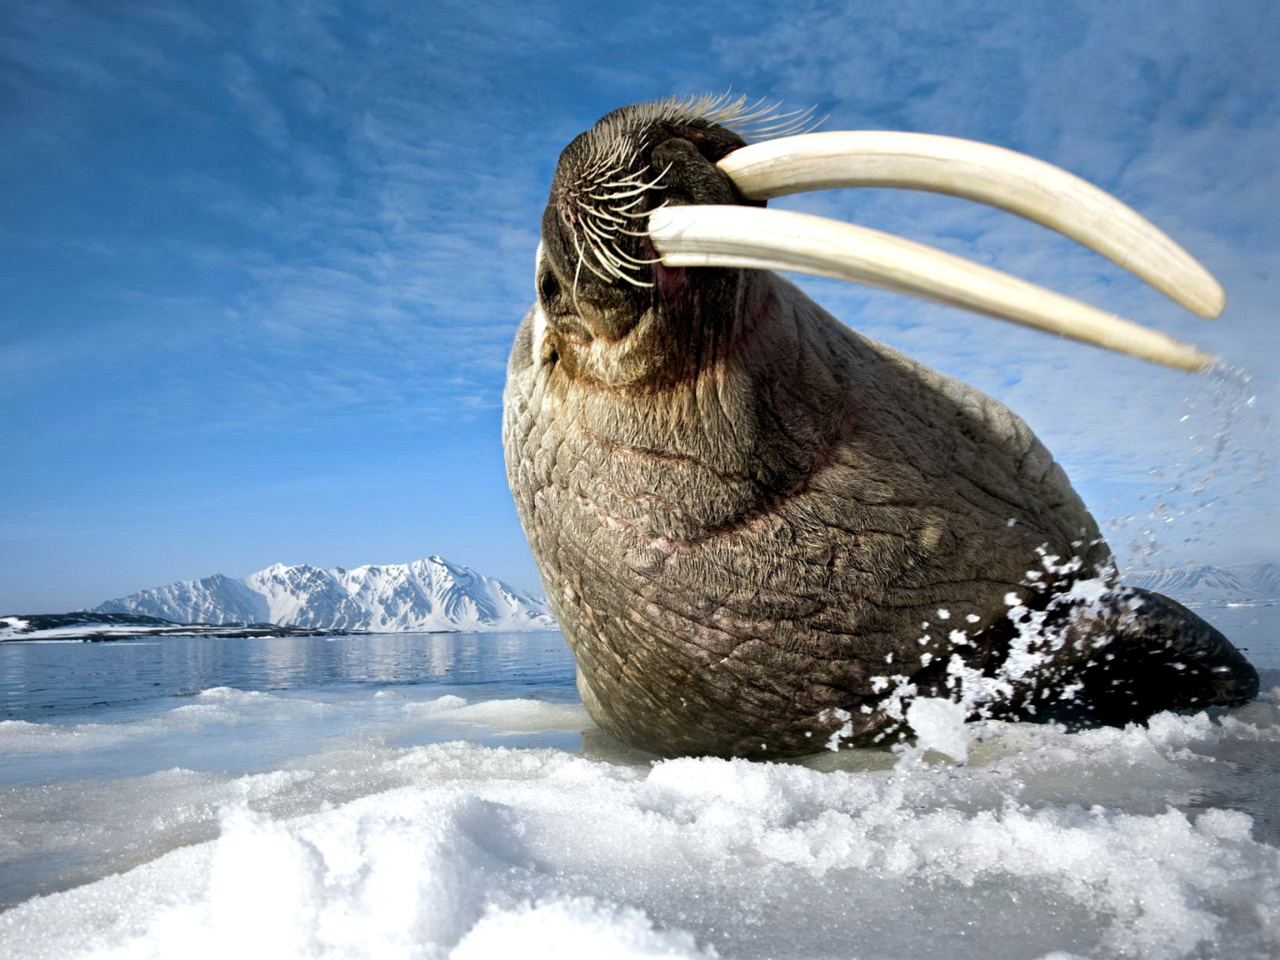 Walrus on ice floe screenshot #1 1280x960